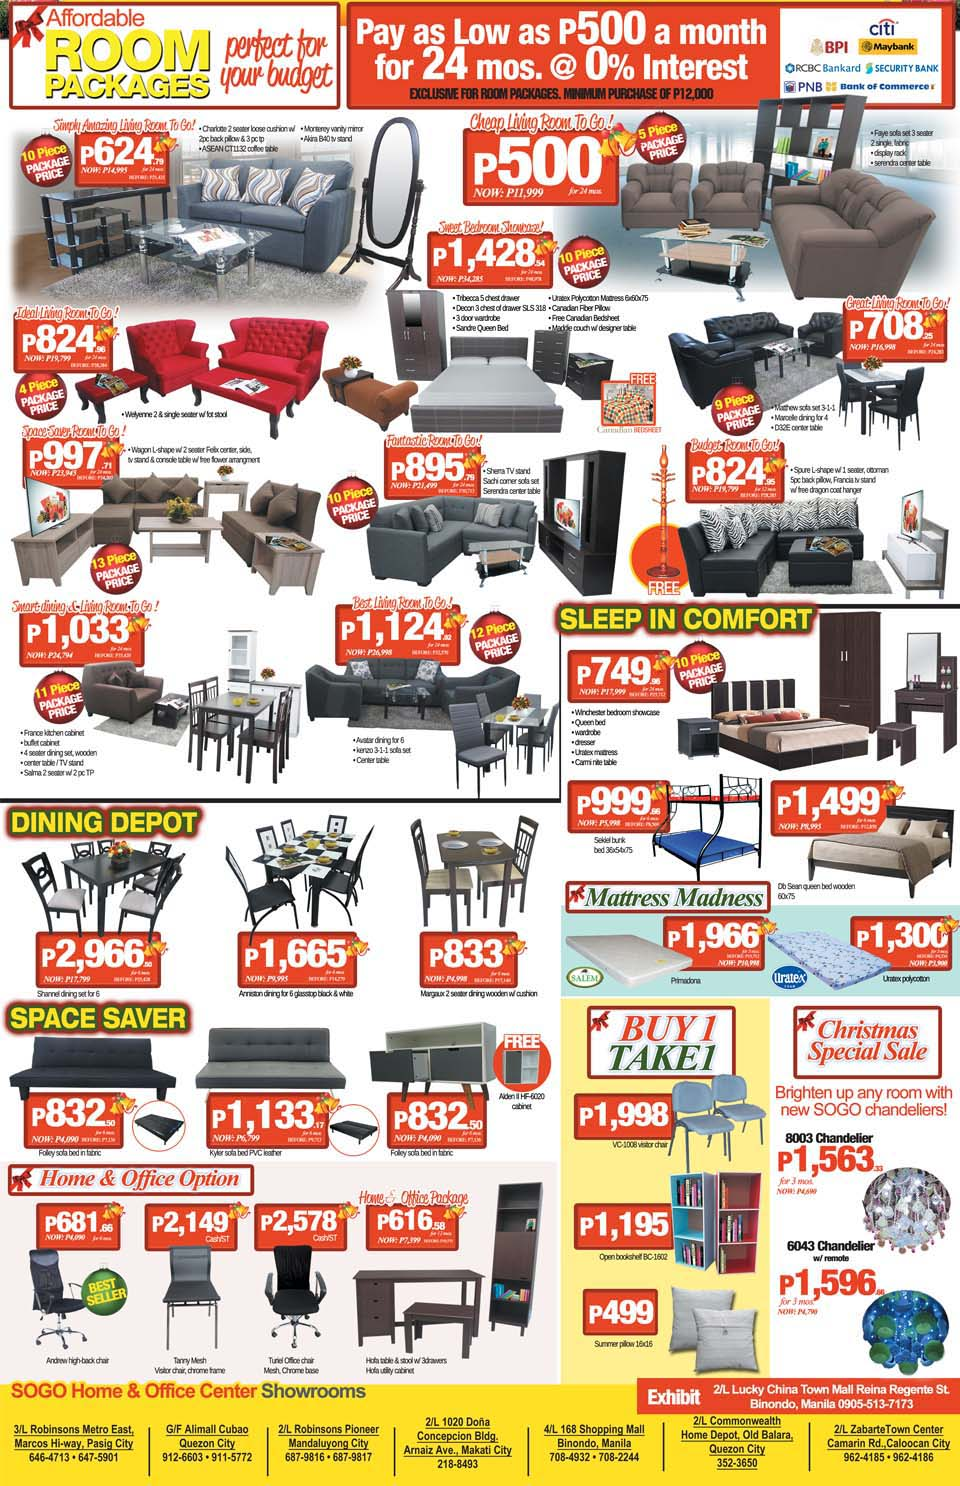 Sogo home office center perfect holiday sale ednything Sm home furniture in philippines